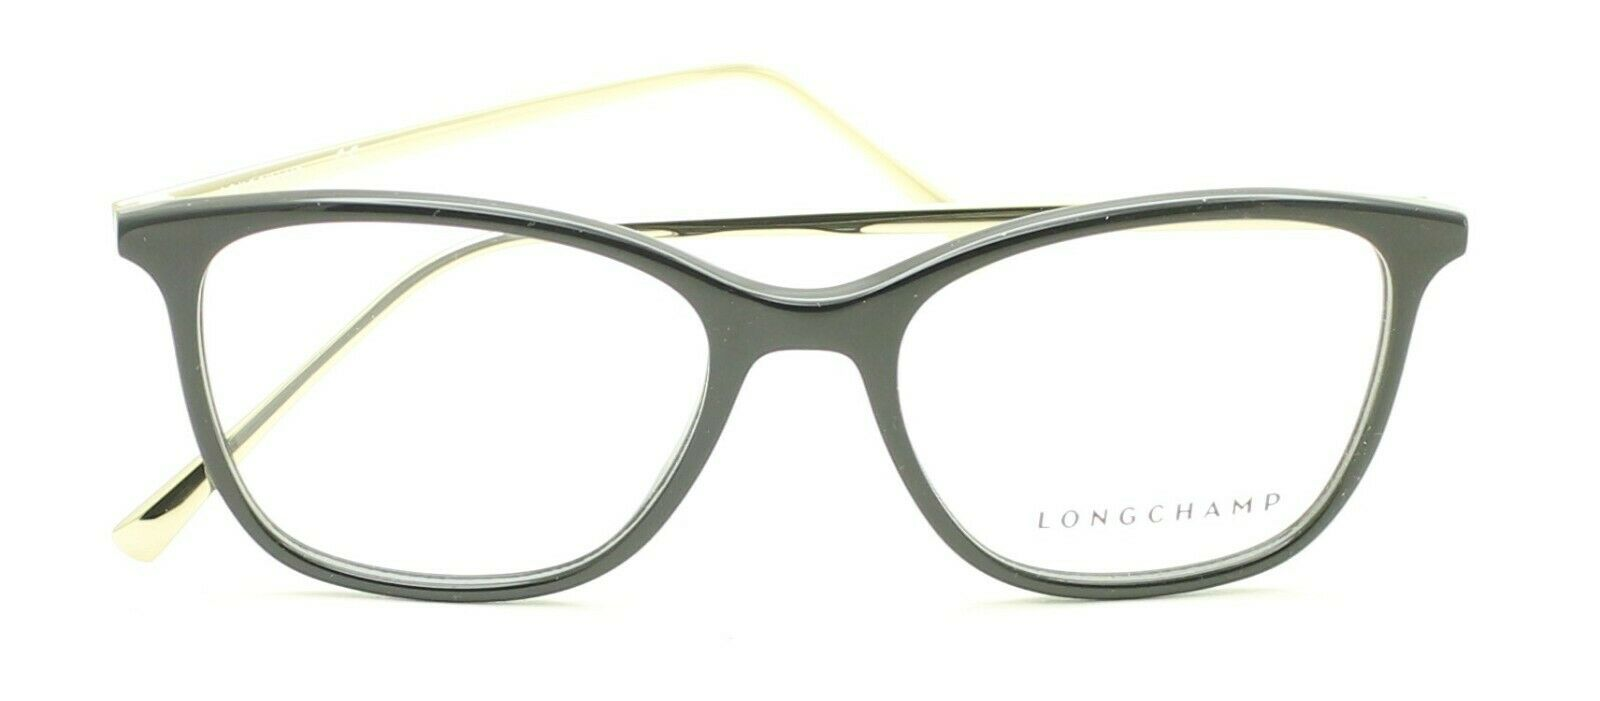 LONGCHAMP LO2606 001 51mm Eyewear FRAMES Glasses RX Optical Eyeglasses - New